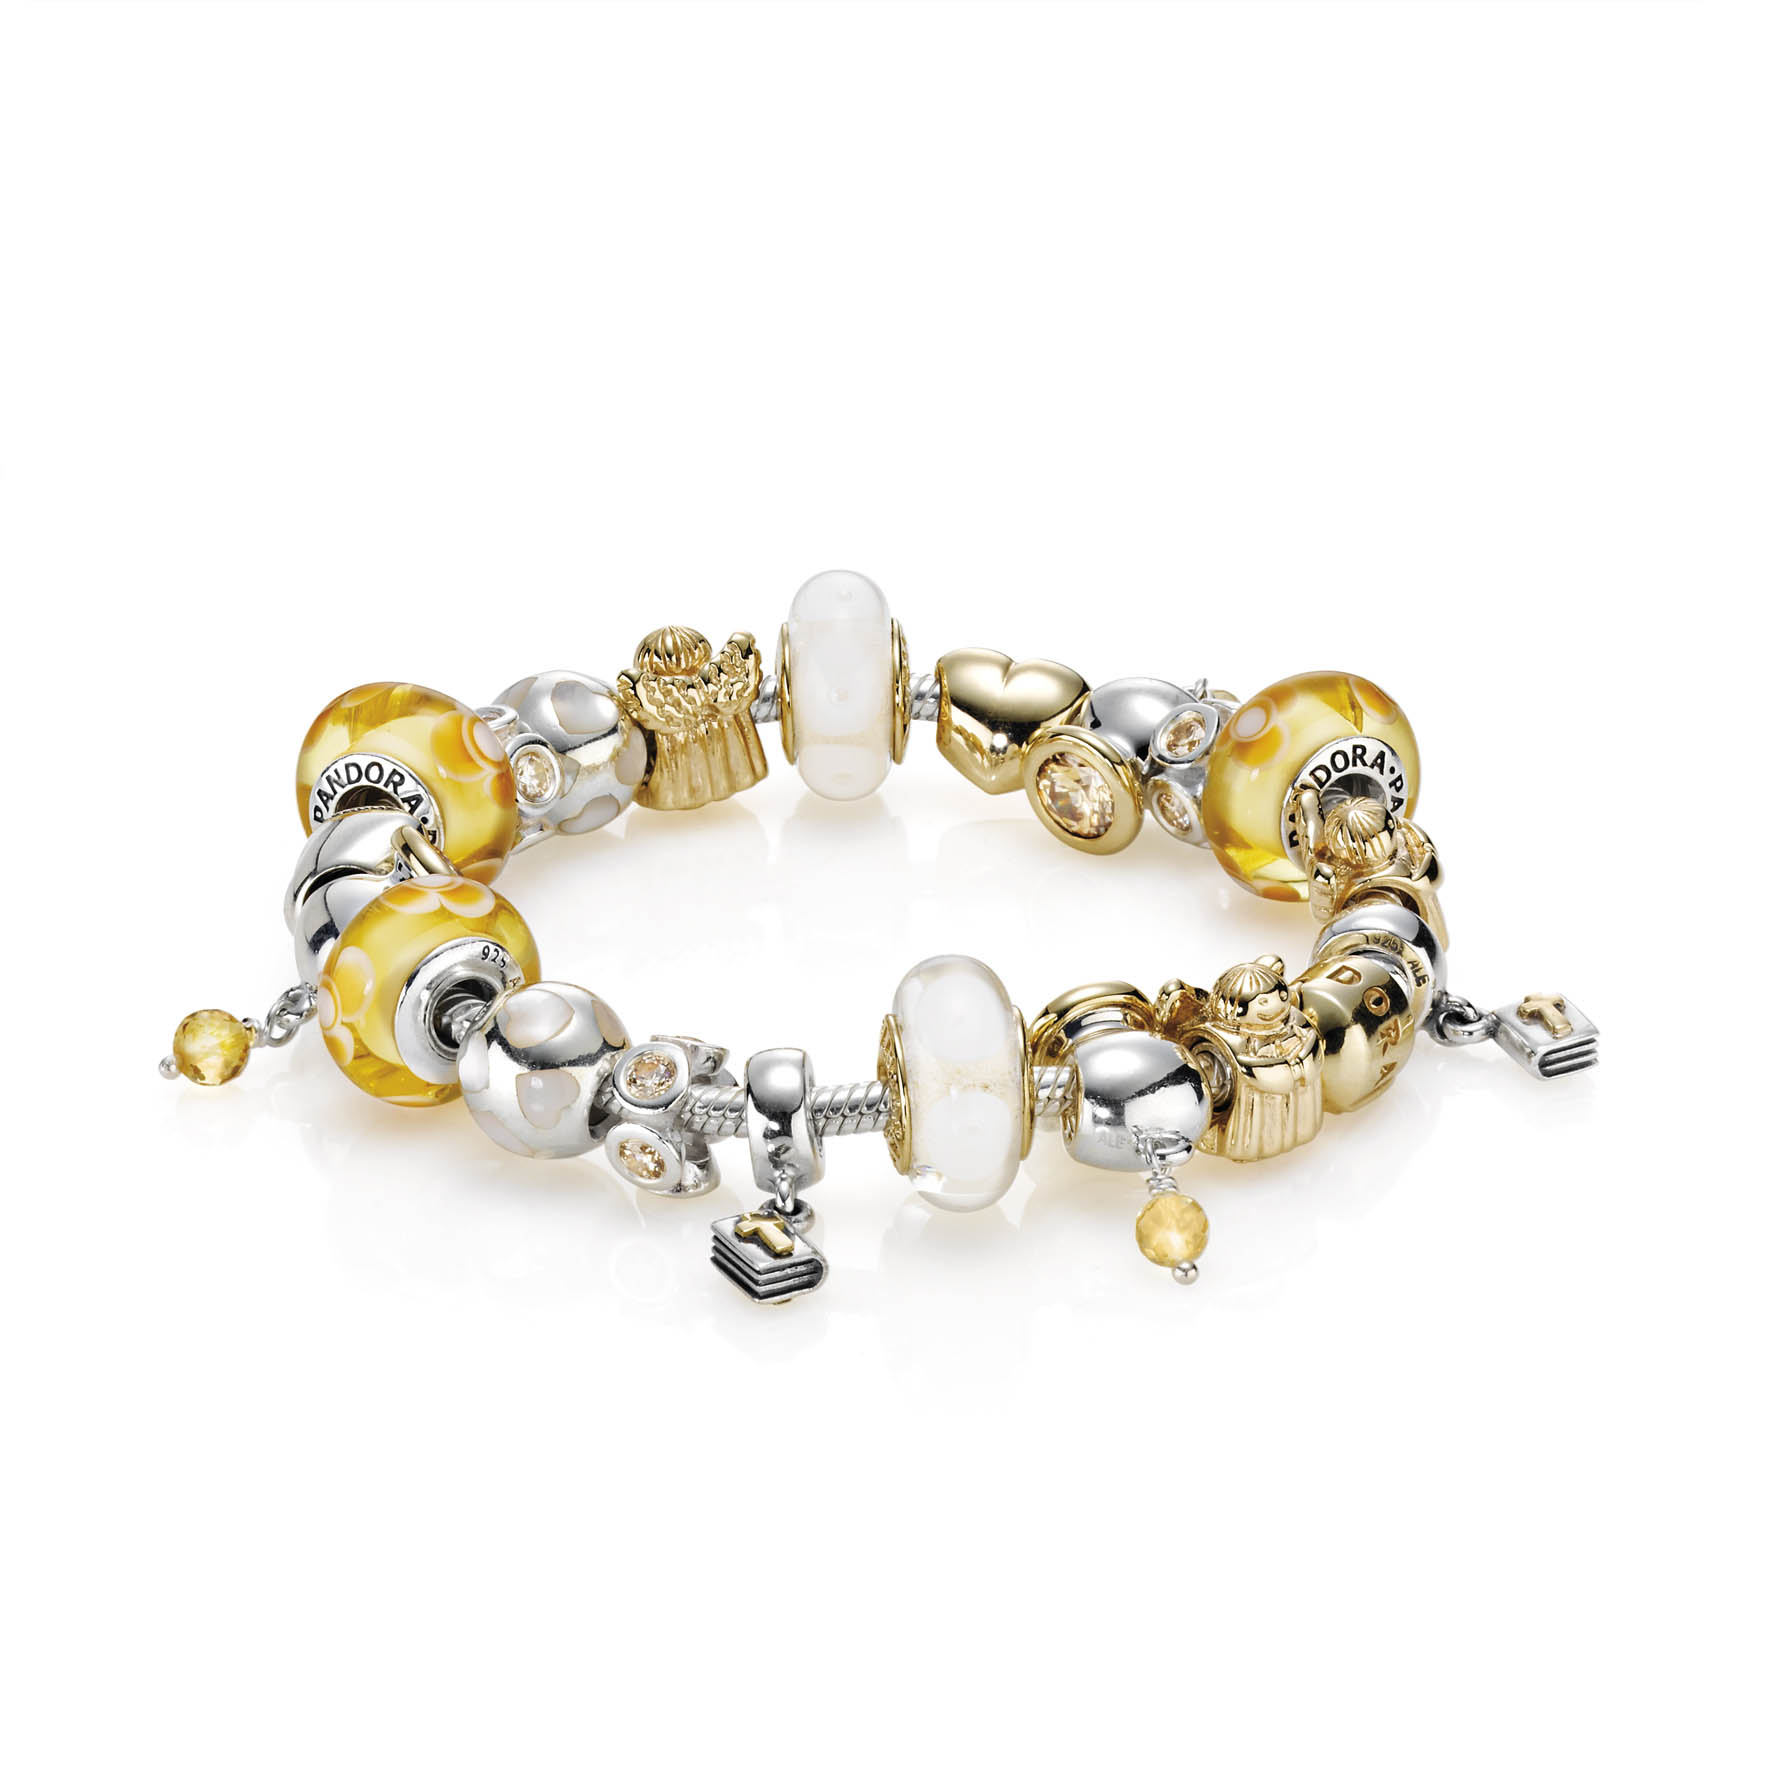 pin a bangle makes is your bracelet wish heart pandora dream charms bangles